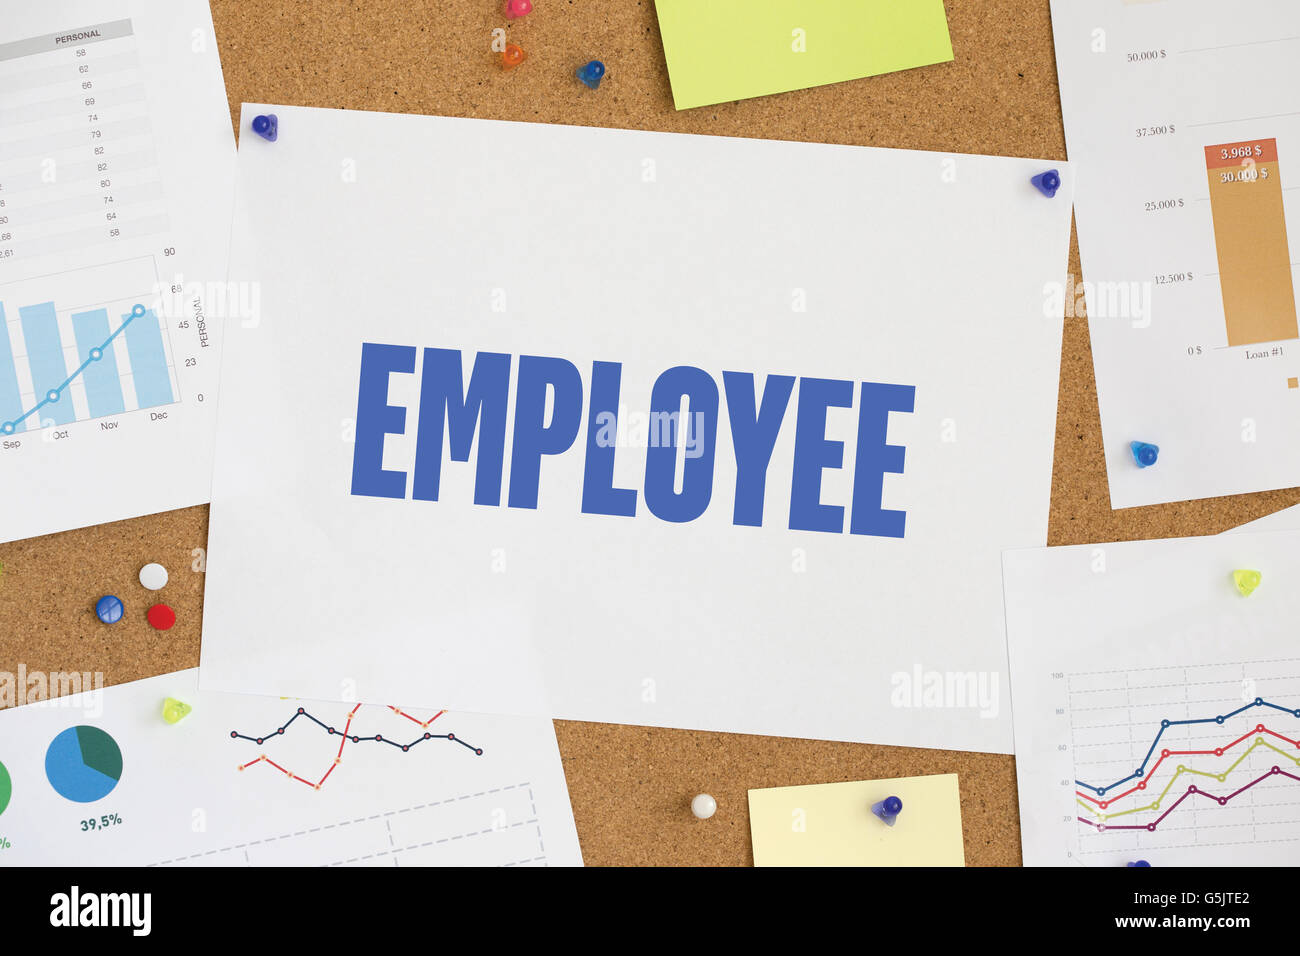 CHART BUSINESS GRAPH RESULT COMPANY EMPLOYEE CONCEPT - Stock Image